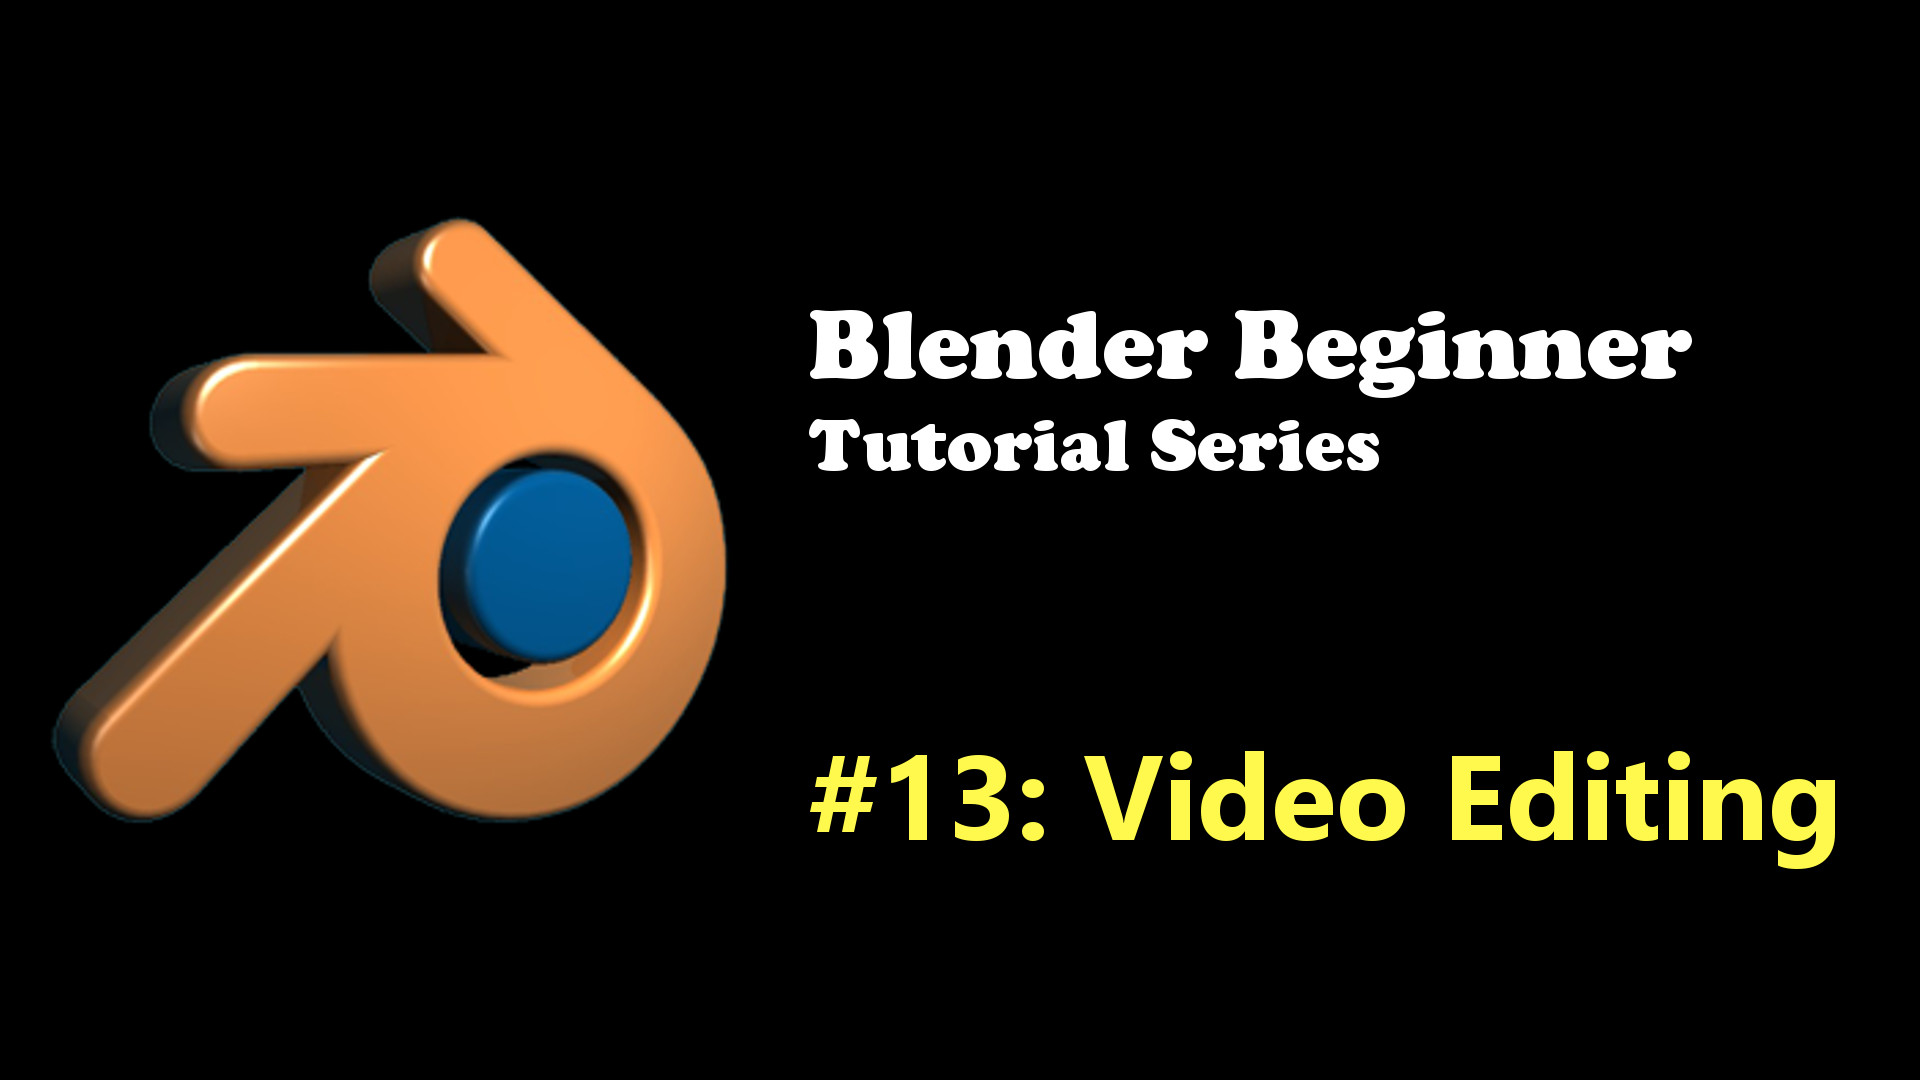 Using Blender as a Video Editor